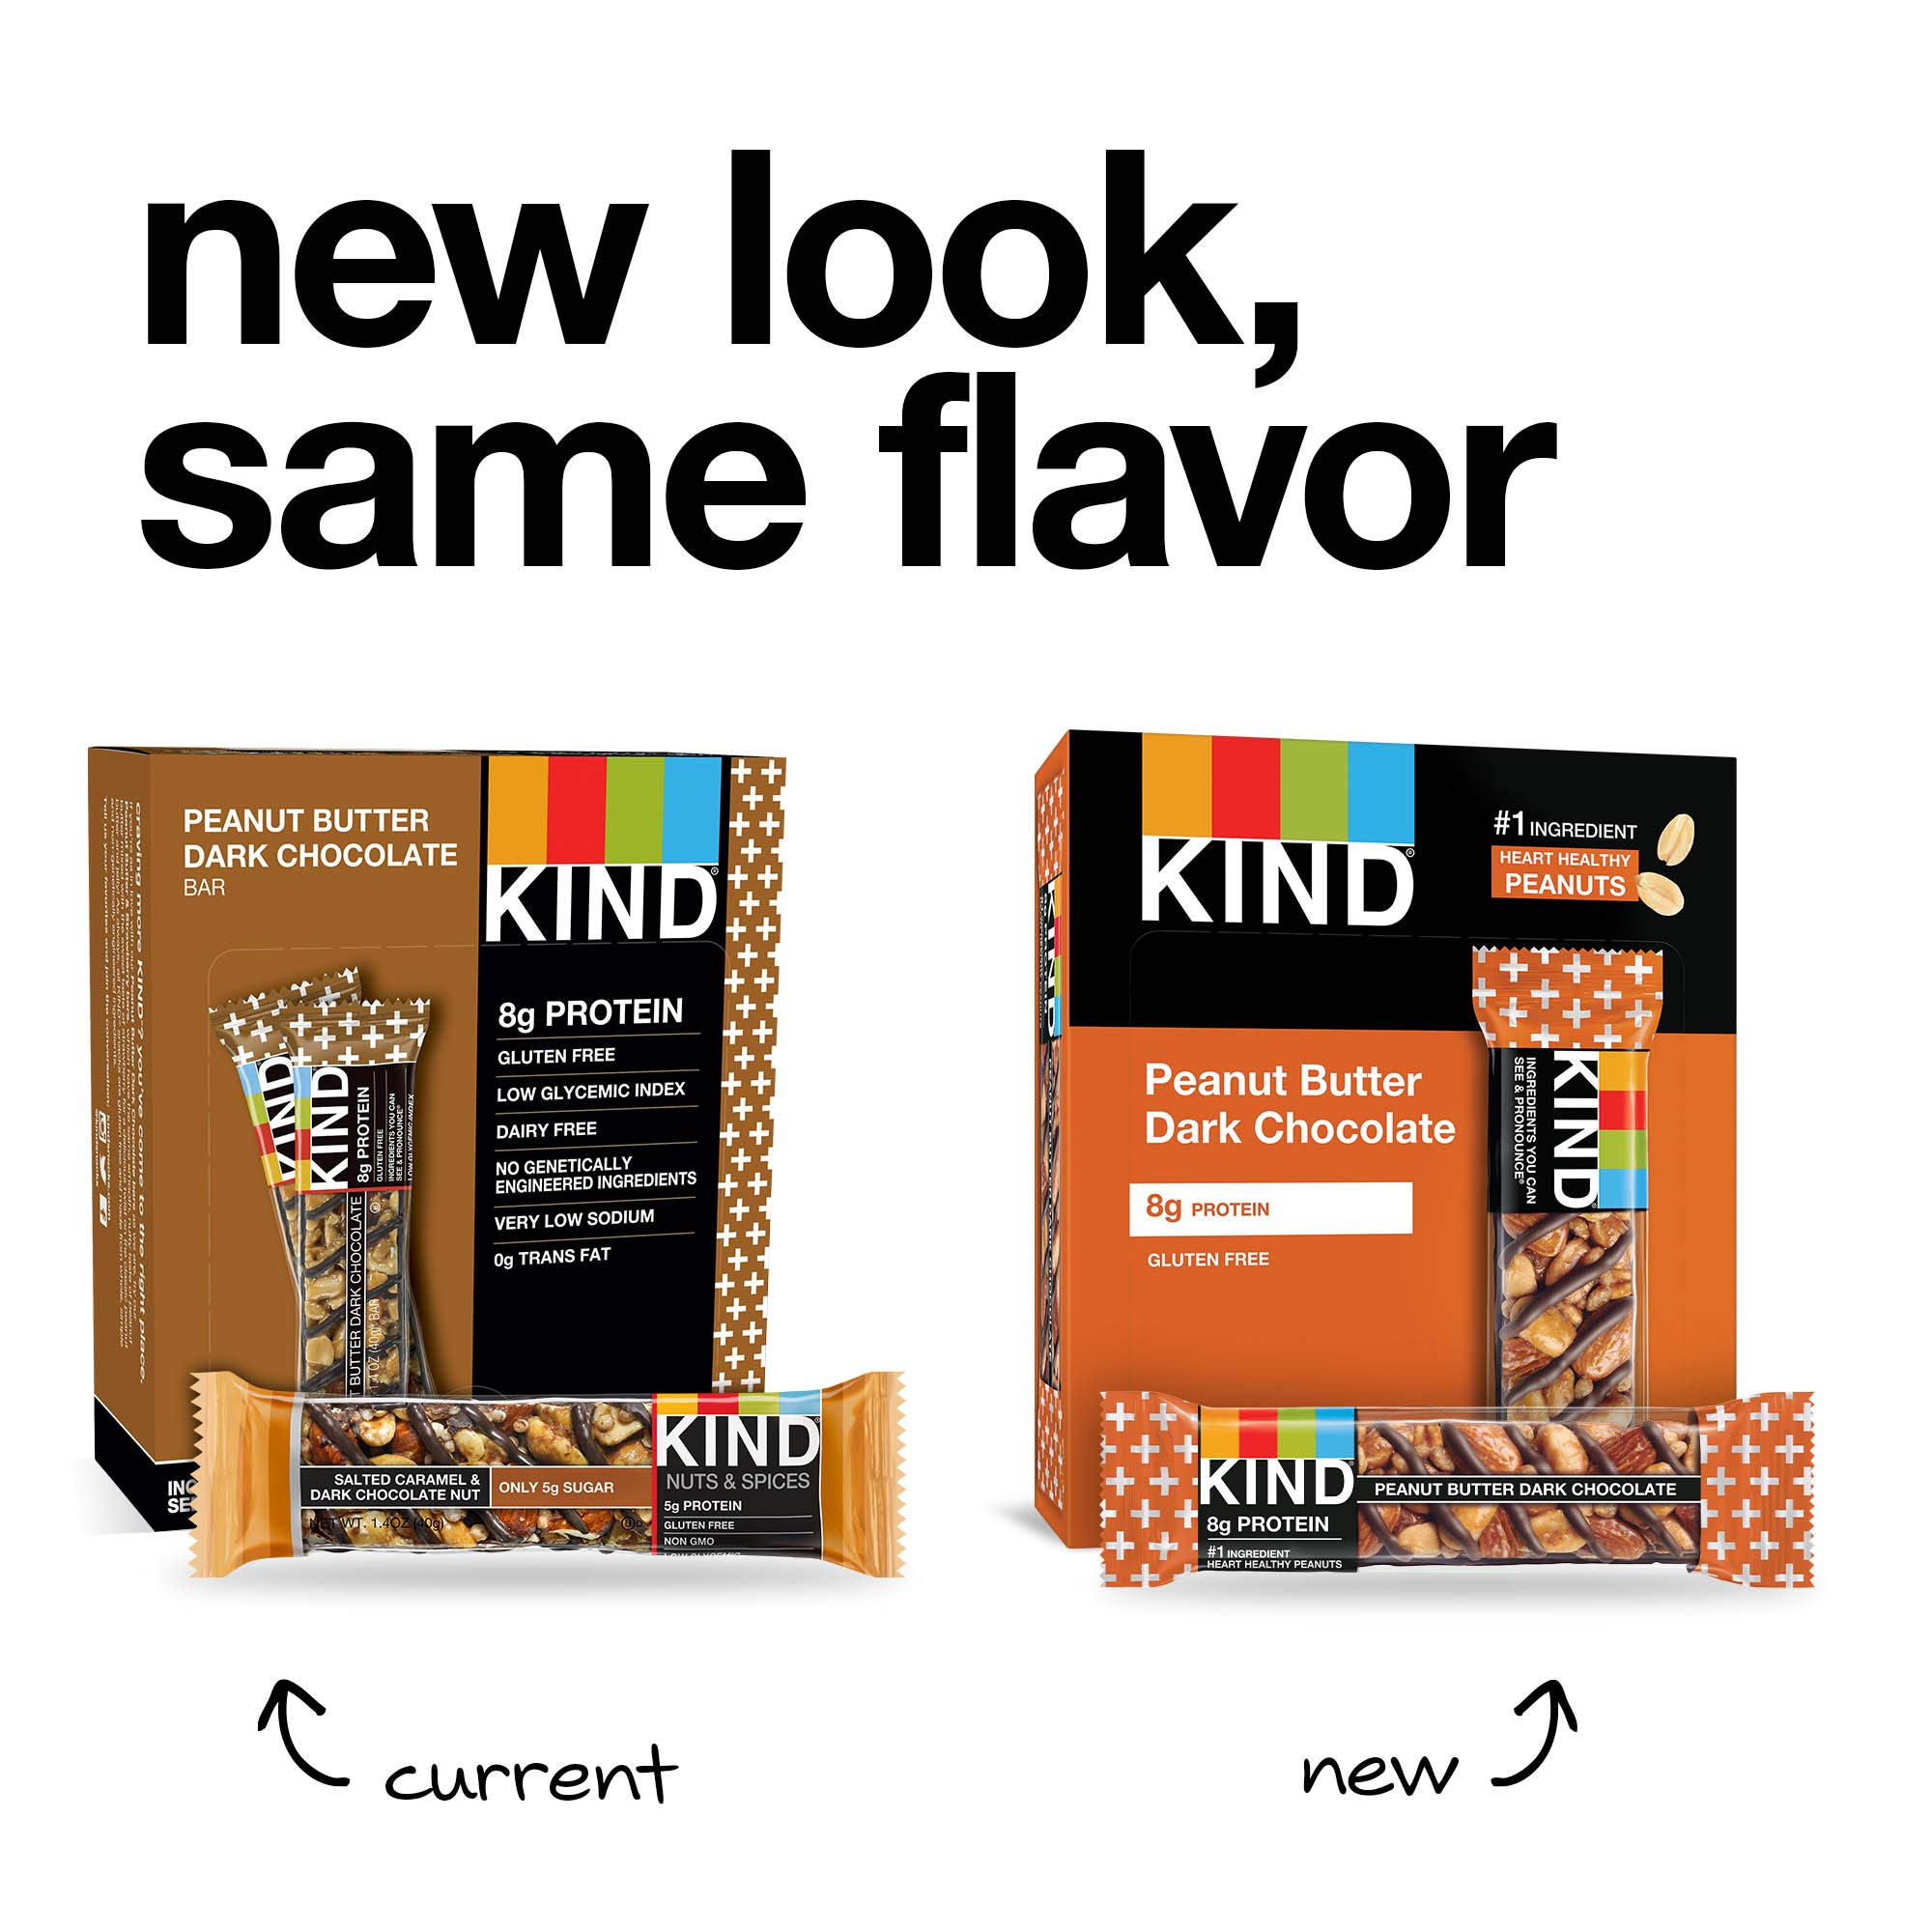 KIND Bars, Peanut Butter Dark Chocolate, 8g Protein, Gluten Free, 1.4 Ounce Bars, 24 Count by KIND (Image #4)